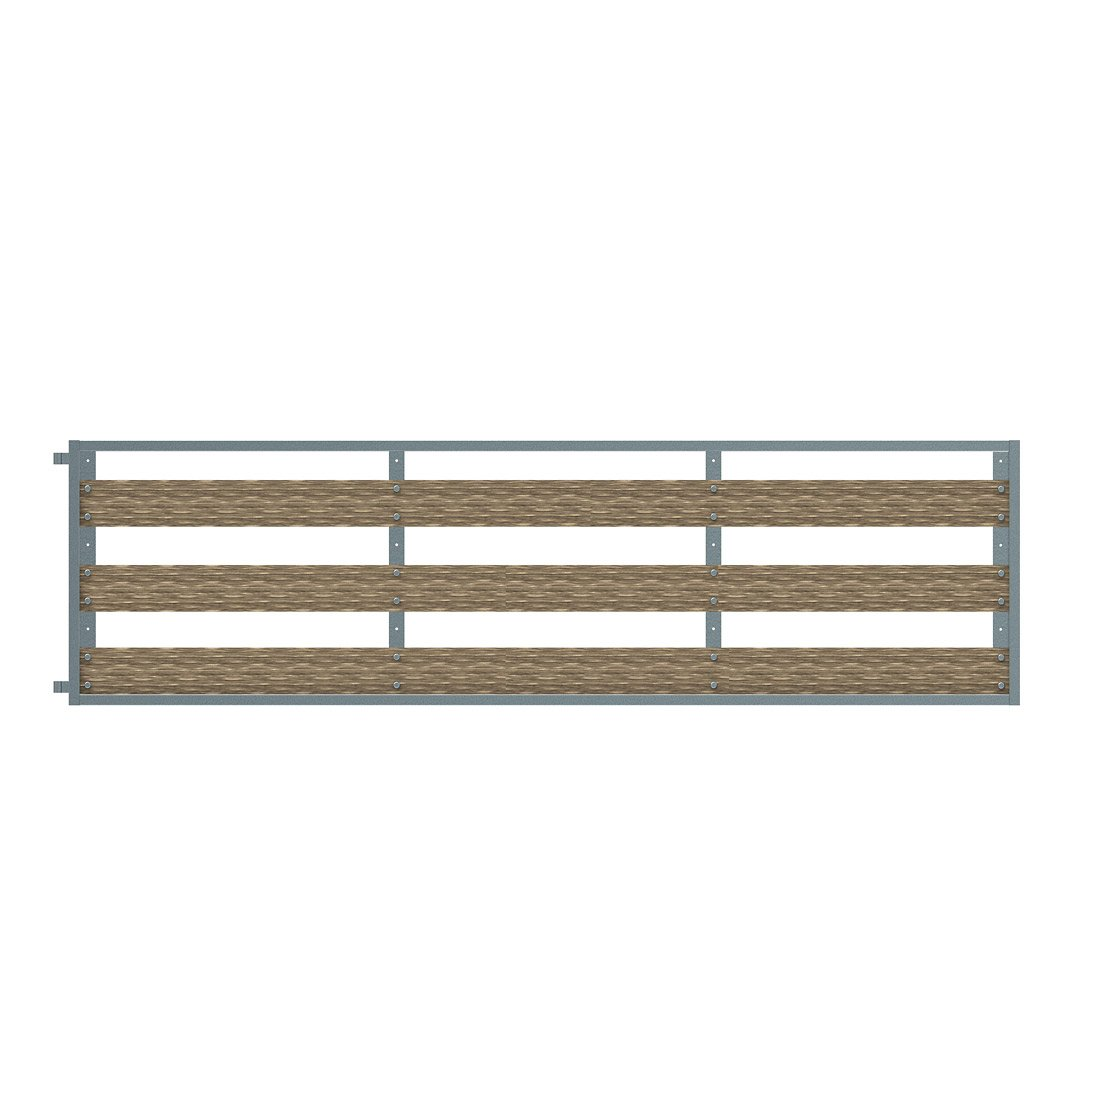 Sheepyard gate 3600mm x 850mm (frame only)